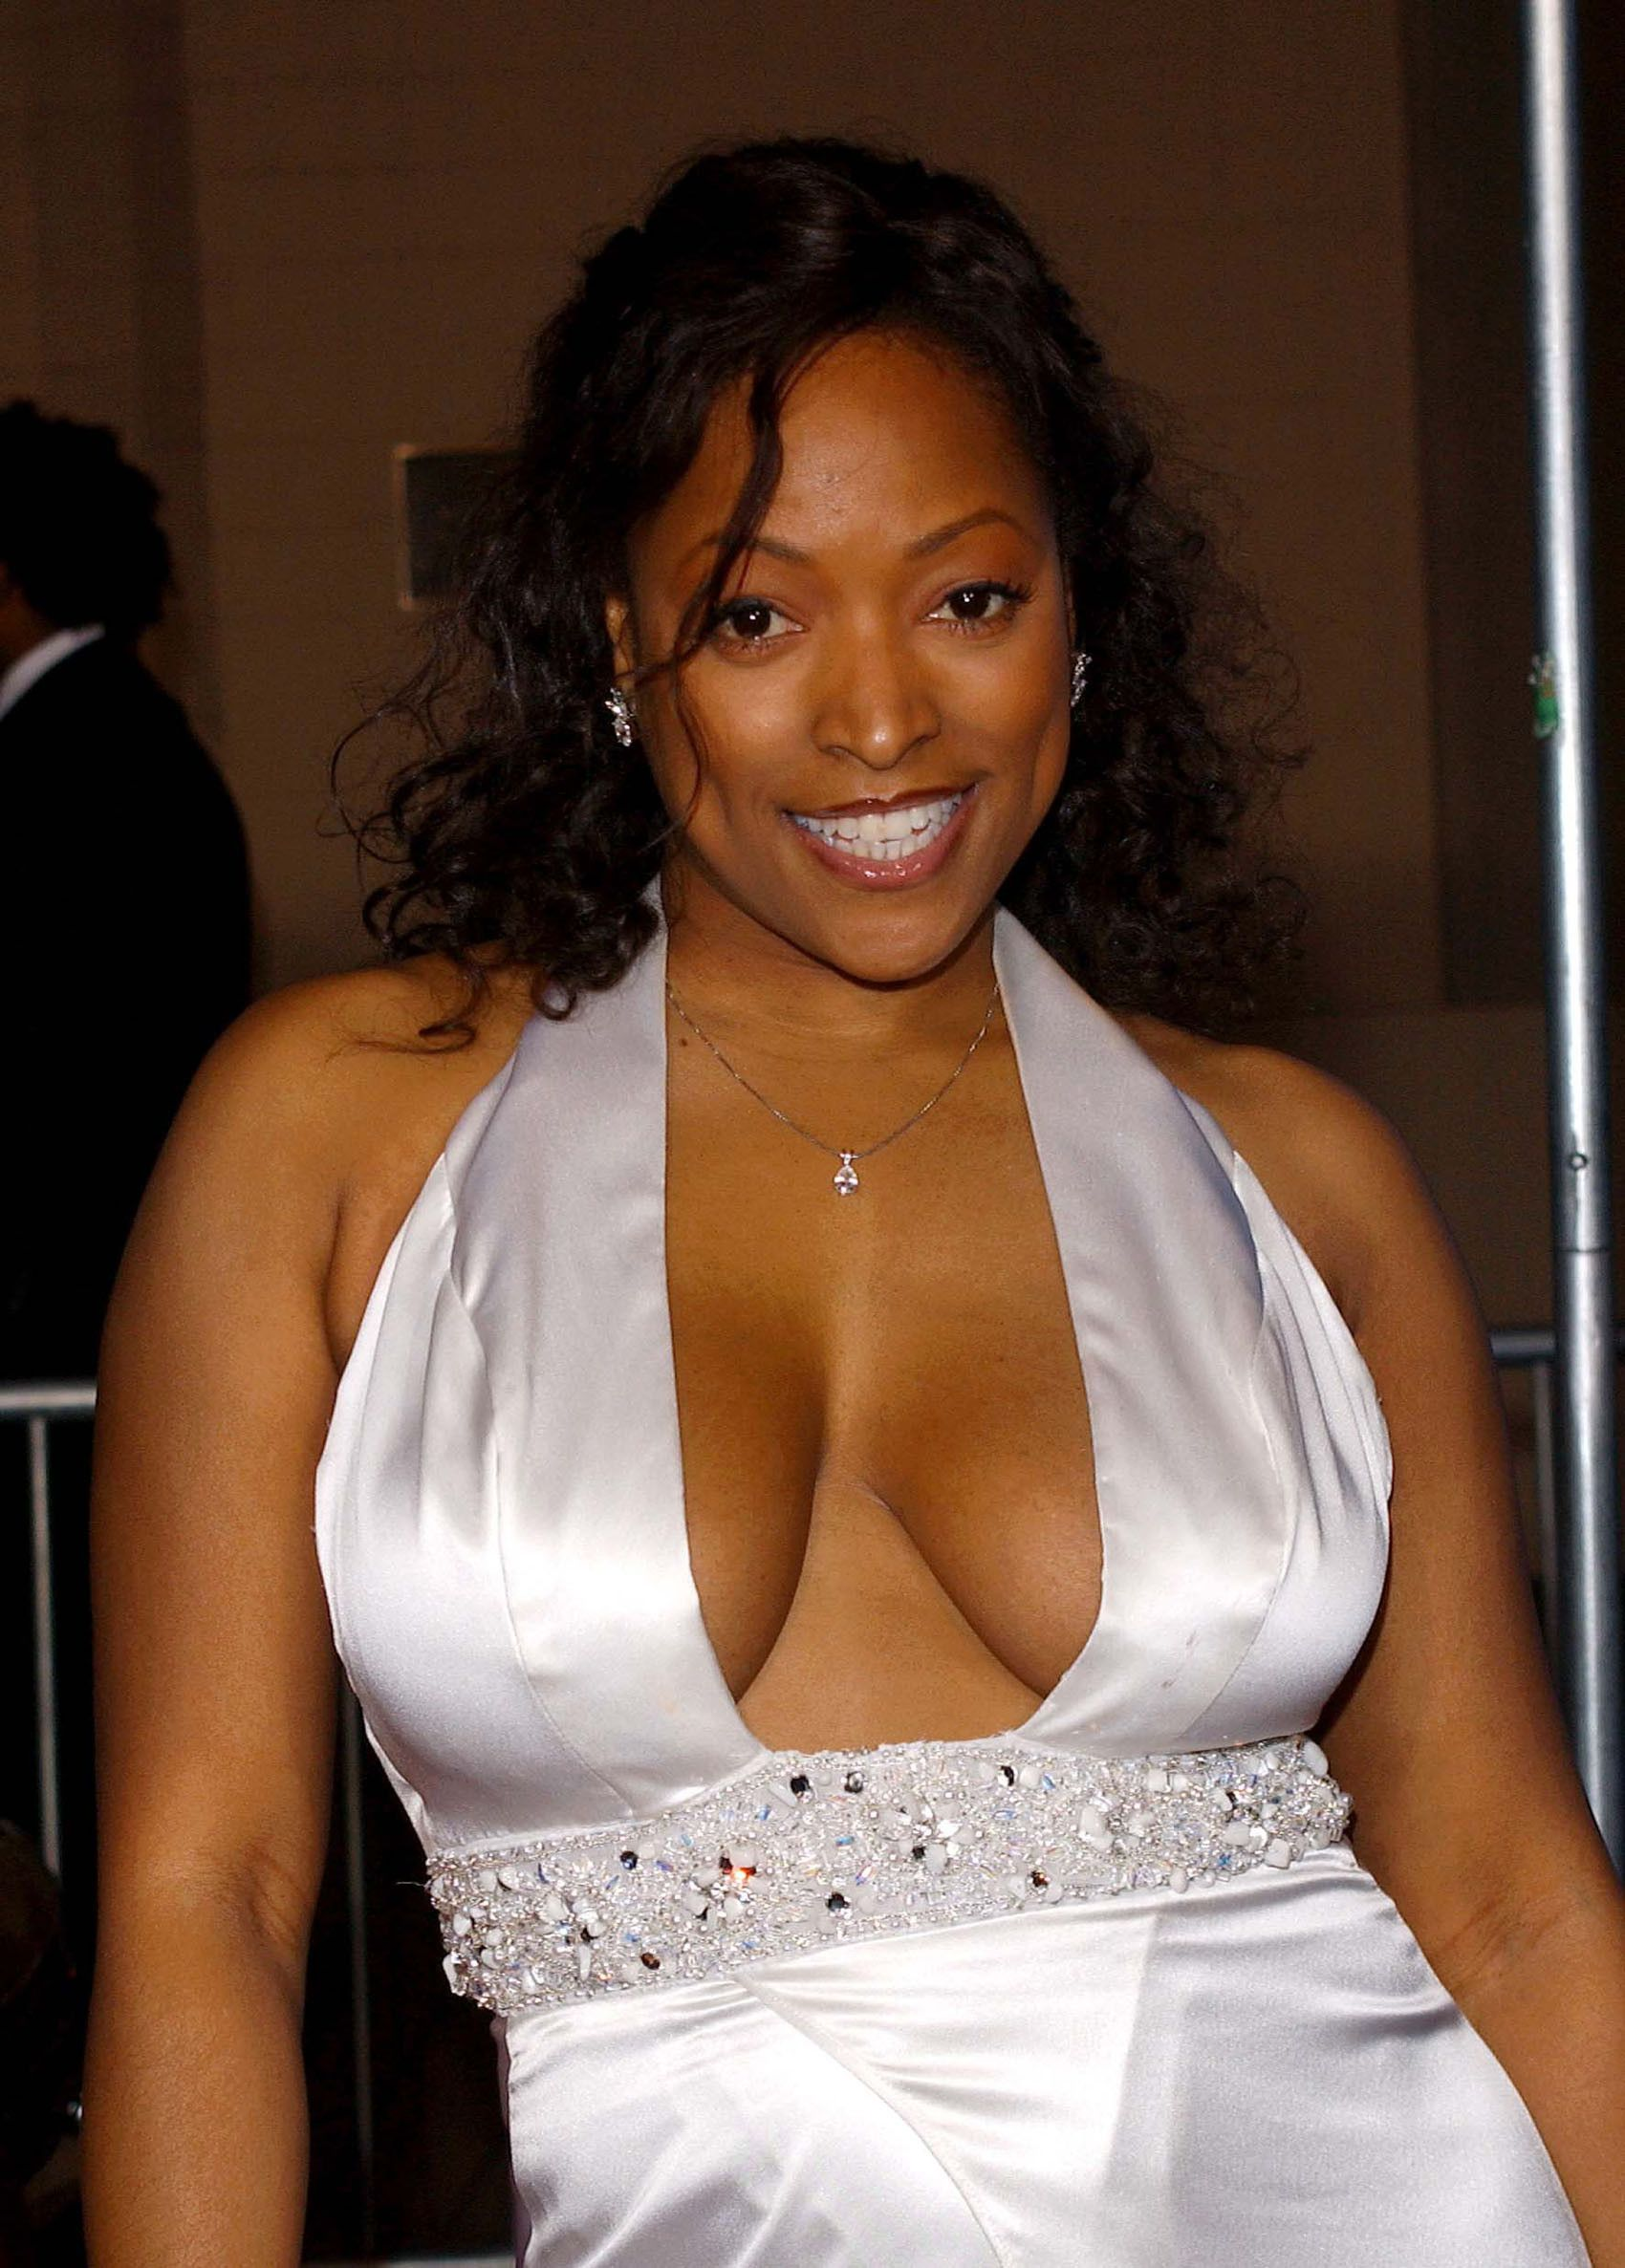 Kellita Smith naked (63 foto and video), Topless, Leaked, Boobs, swimsuit 2018